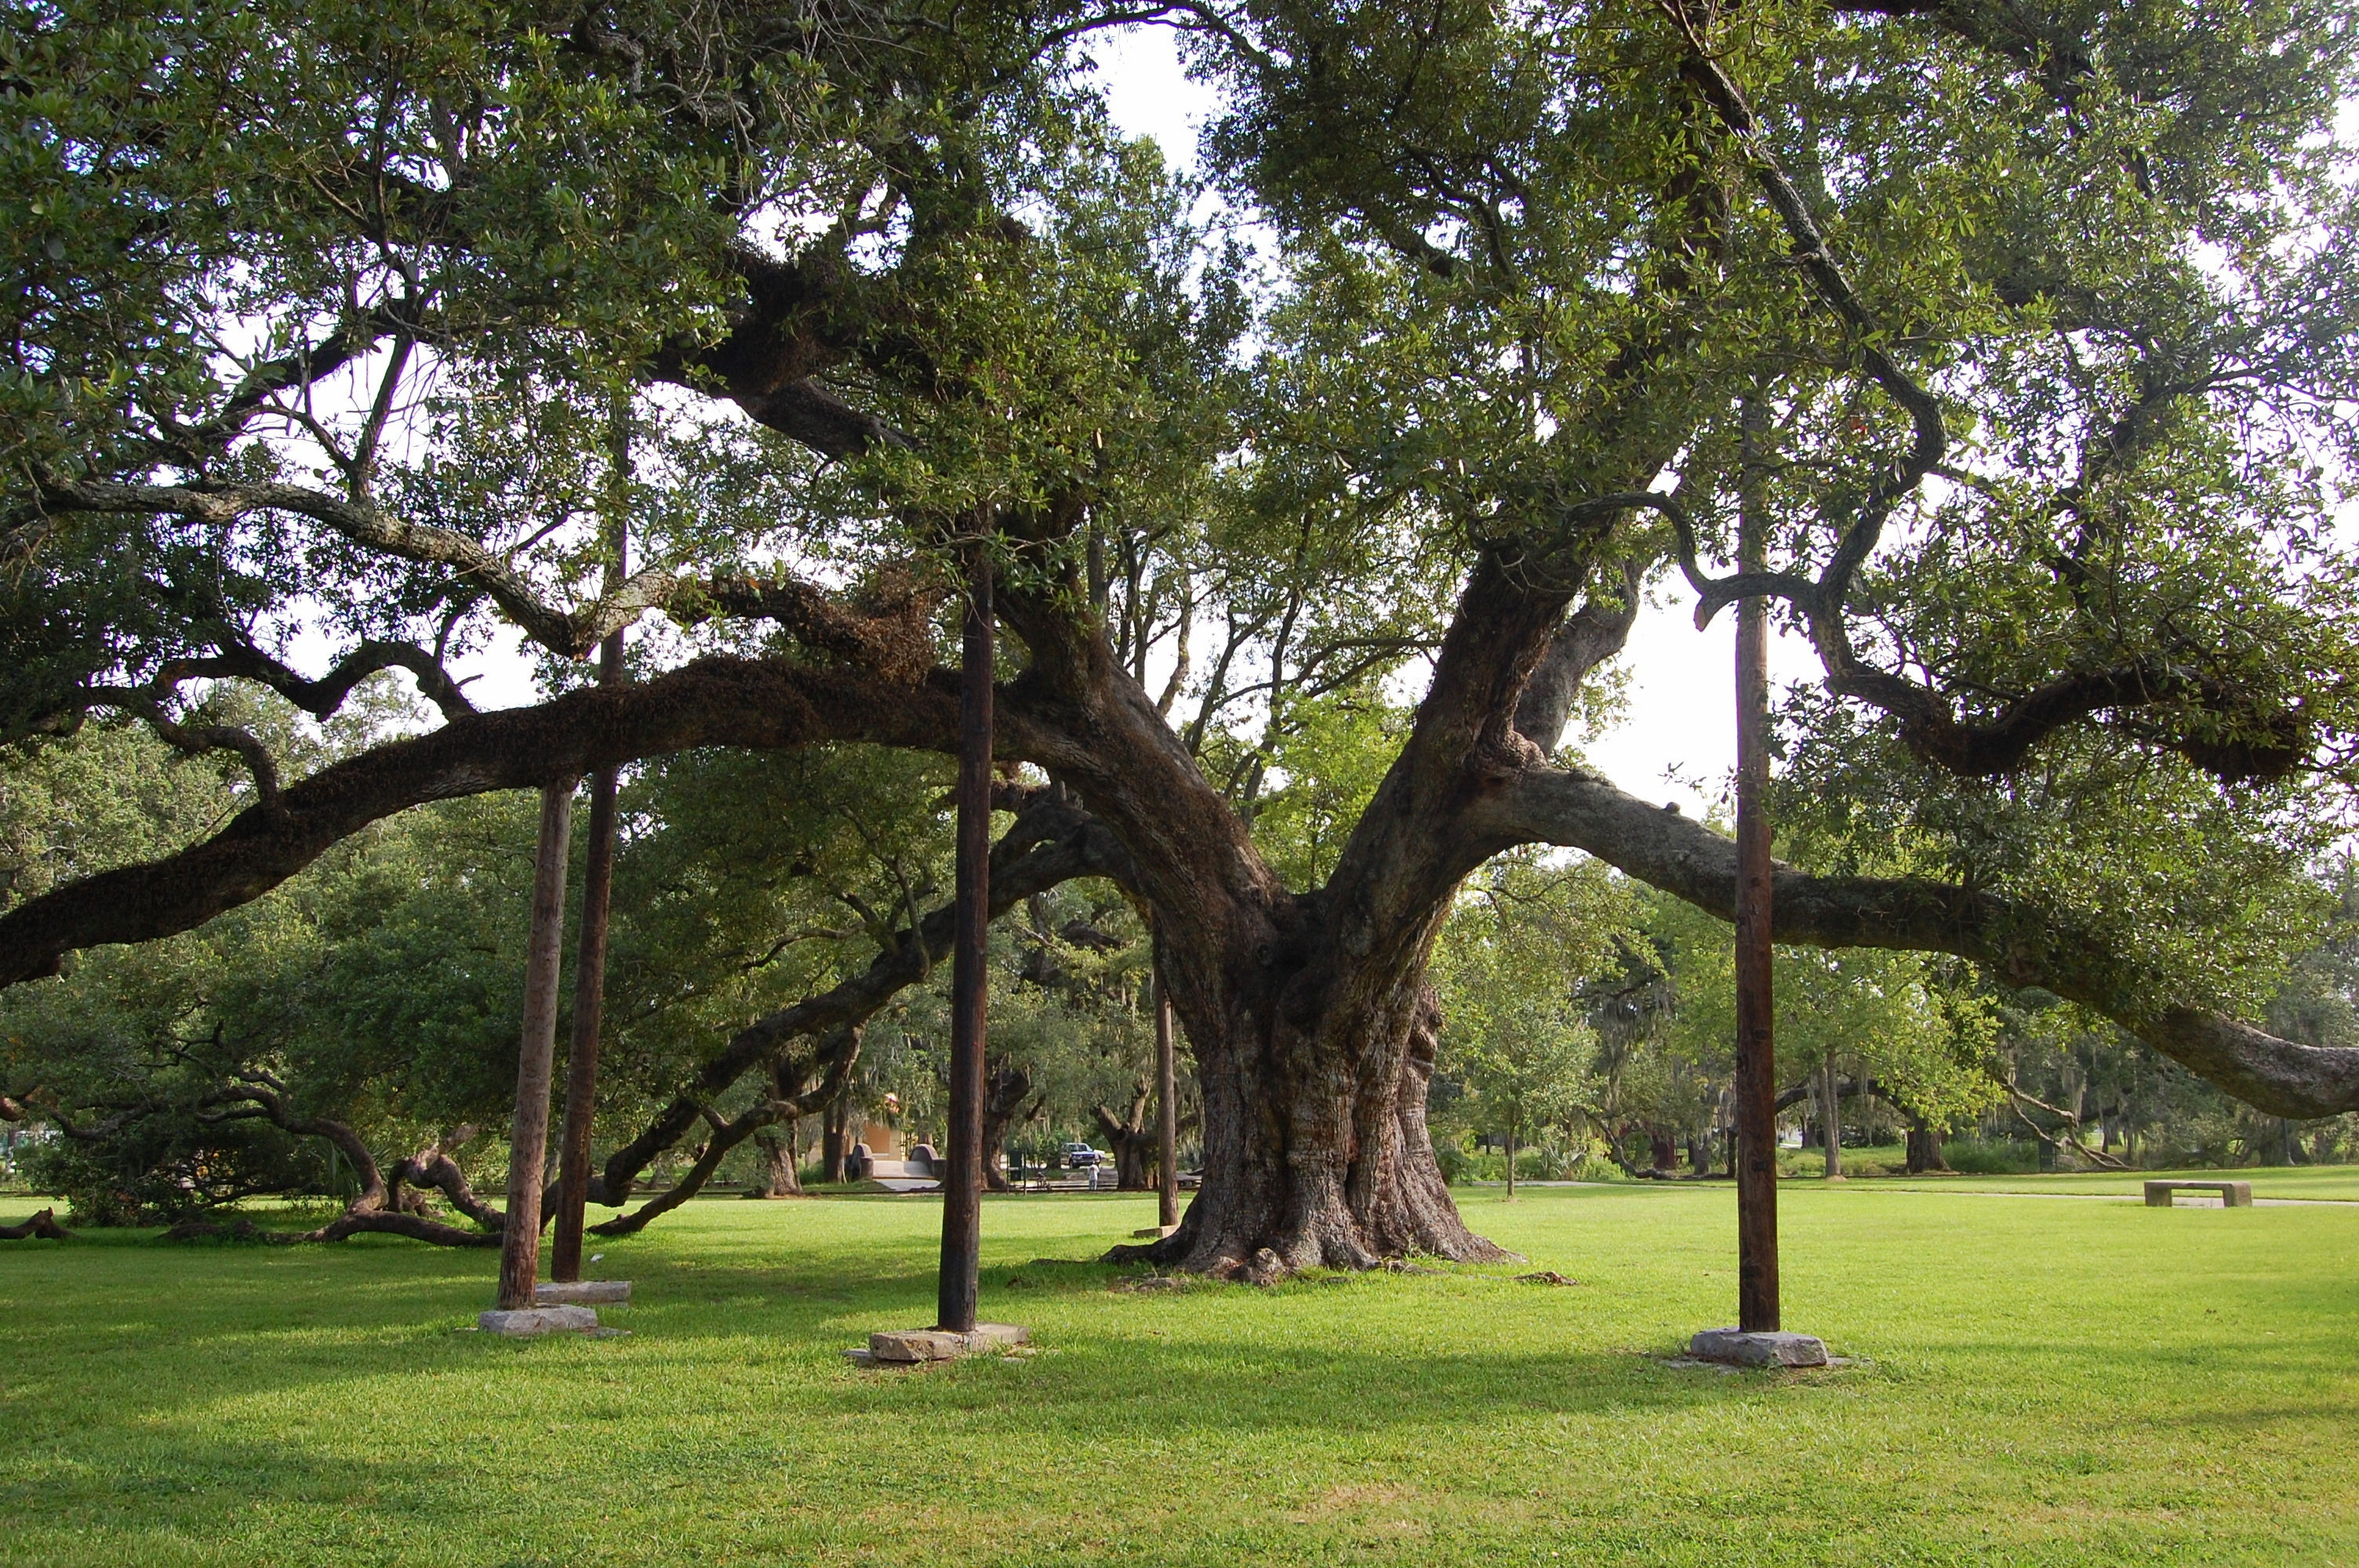 Explore City Park: Do you know the McDonogh Oak?